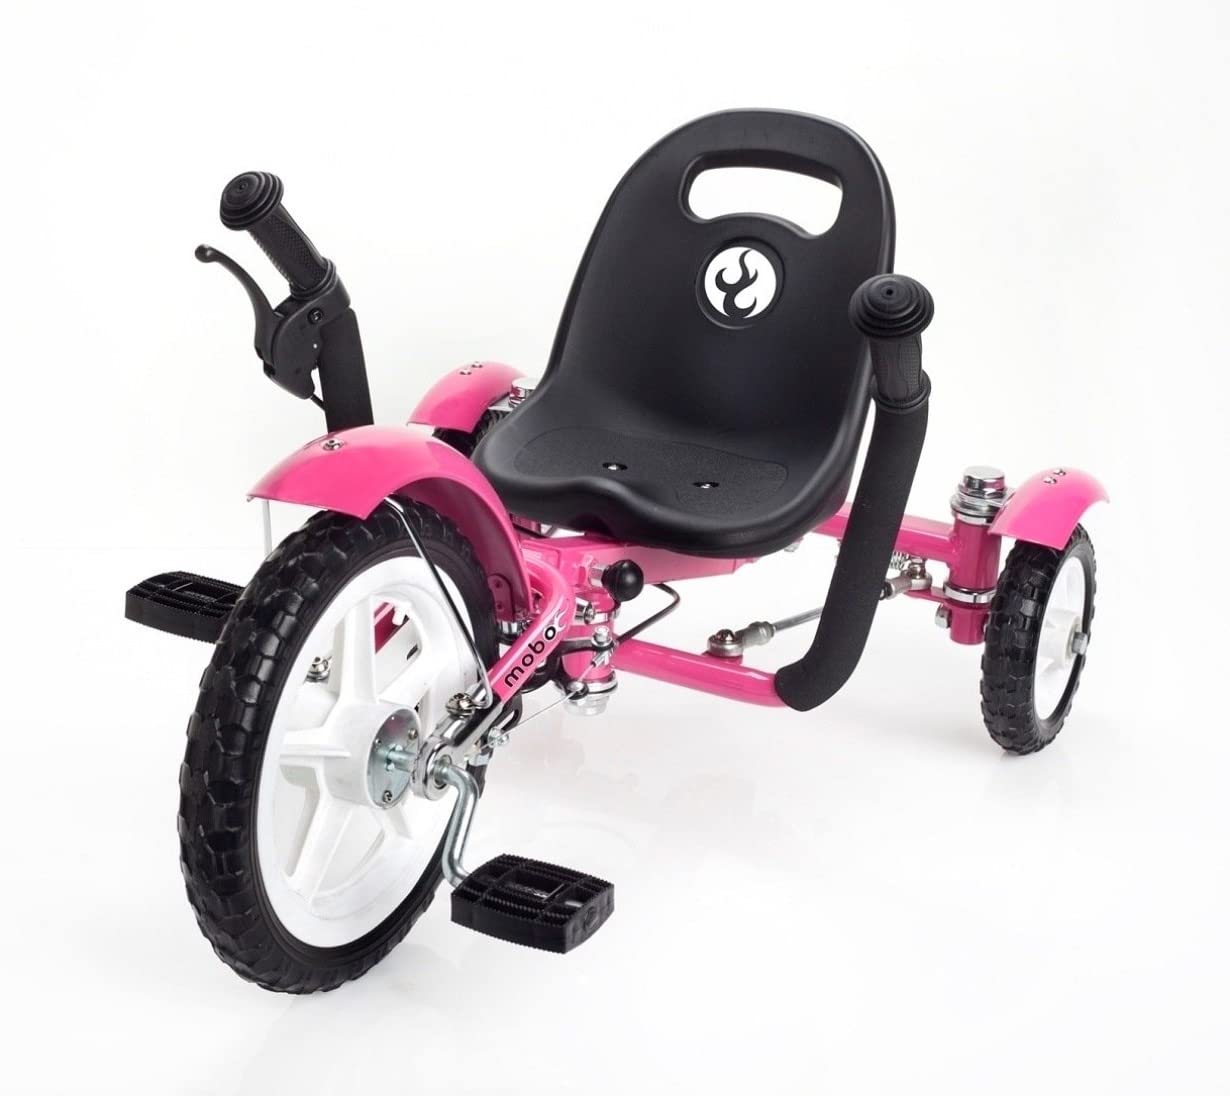 Mobo Tot- A Toddler's Ergonomic Three Wheeled Cruiser